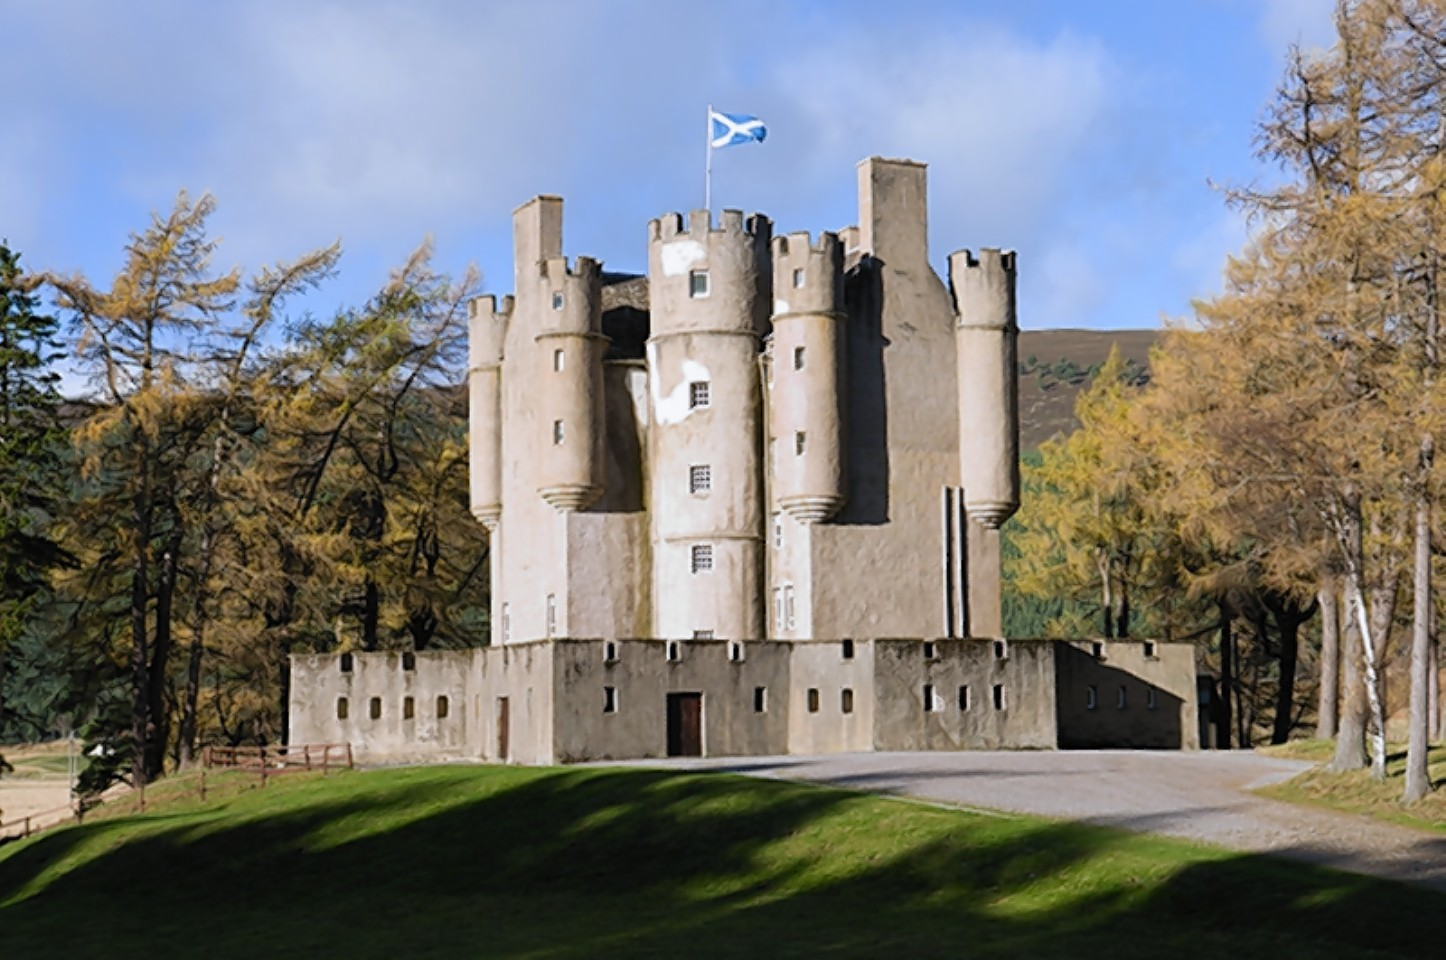 Braemar Castle will be one of the buildings on display at this year's Doors Open Day event.